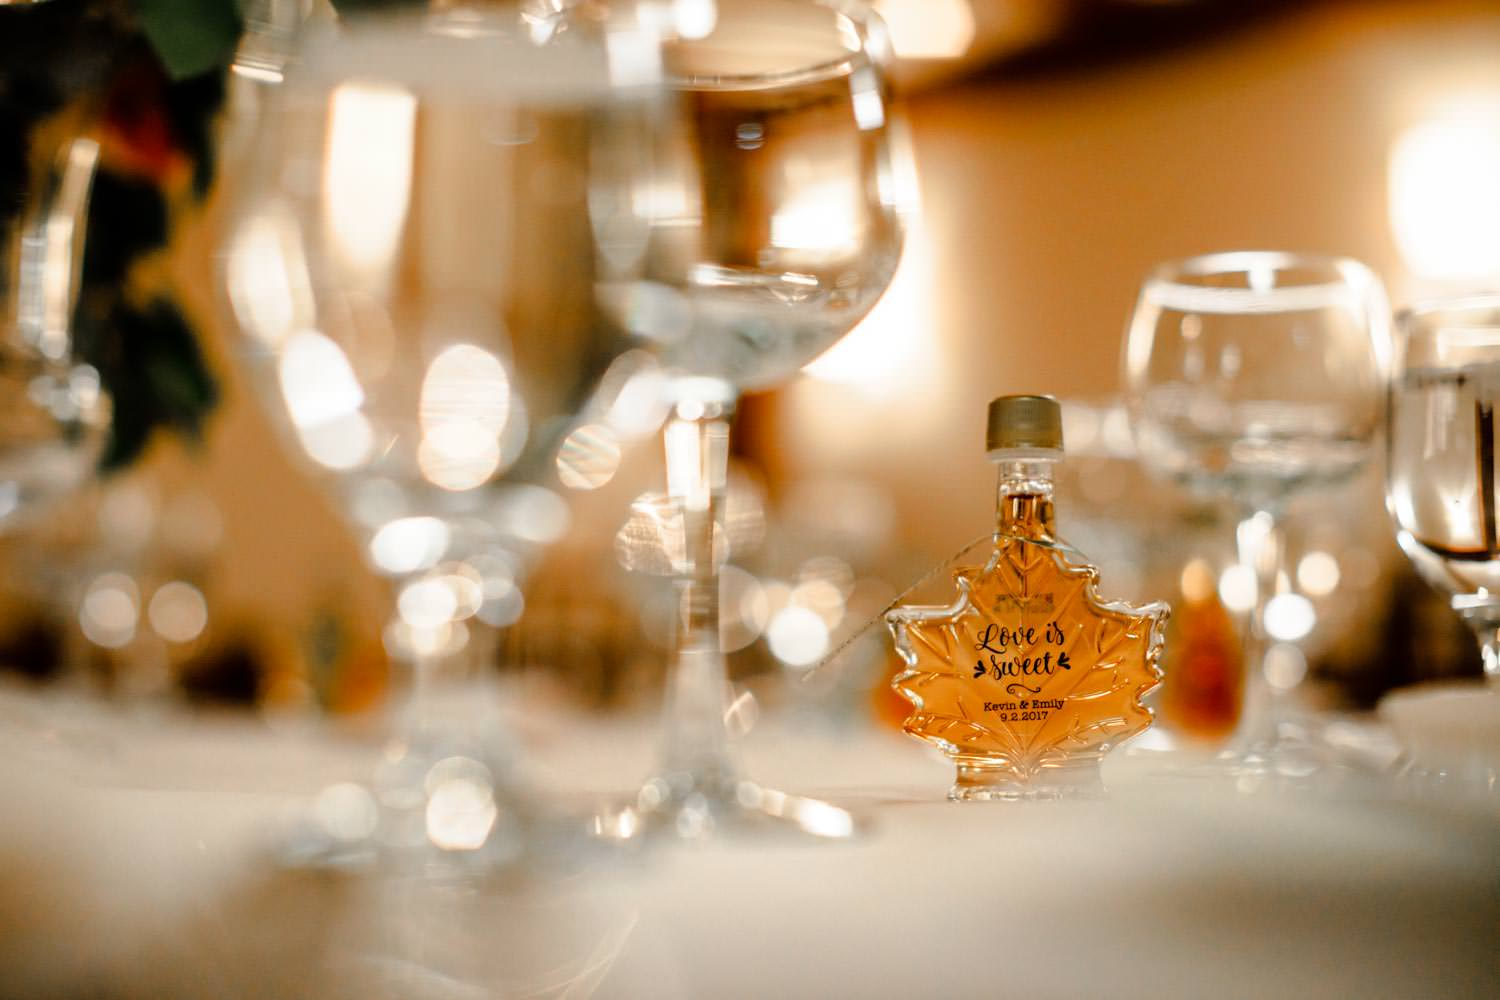 close-up of vermont maple syrup wedding party favor on table of woodstock inn reception